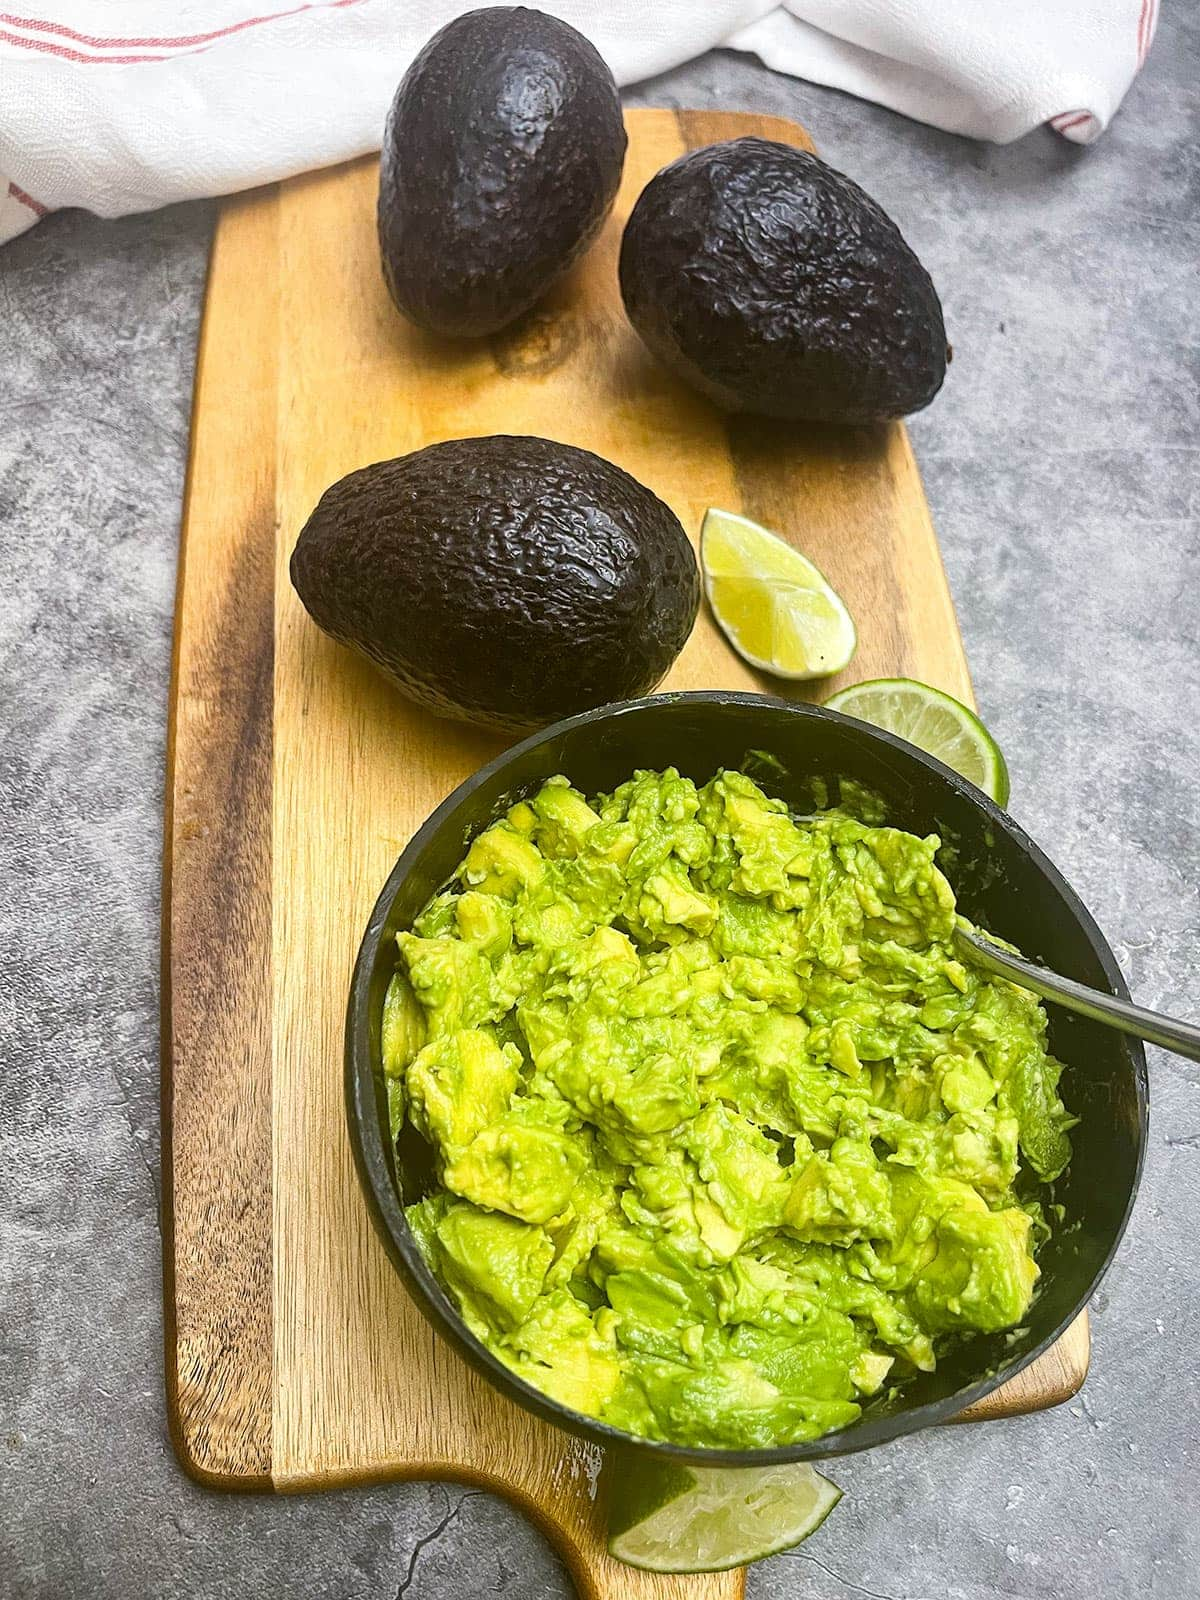 mashed avocado in a wooden bowl on a wooden boafdo